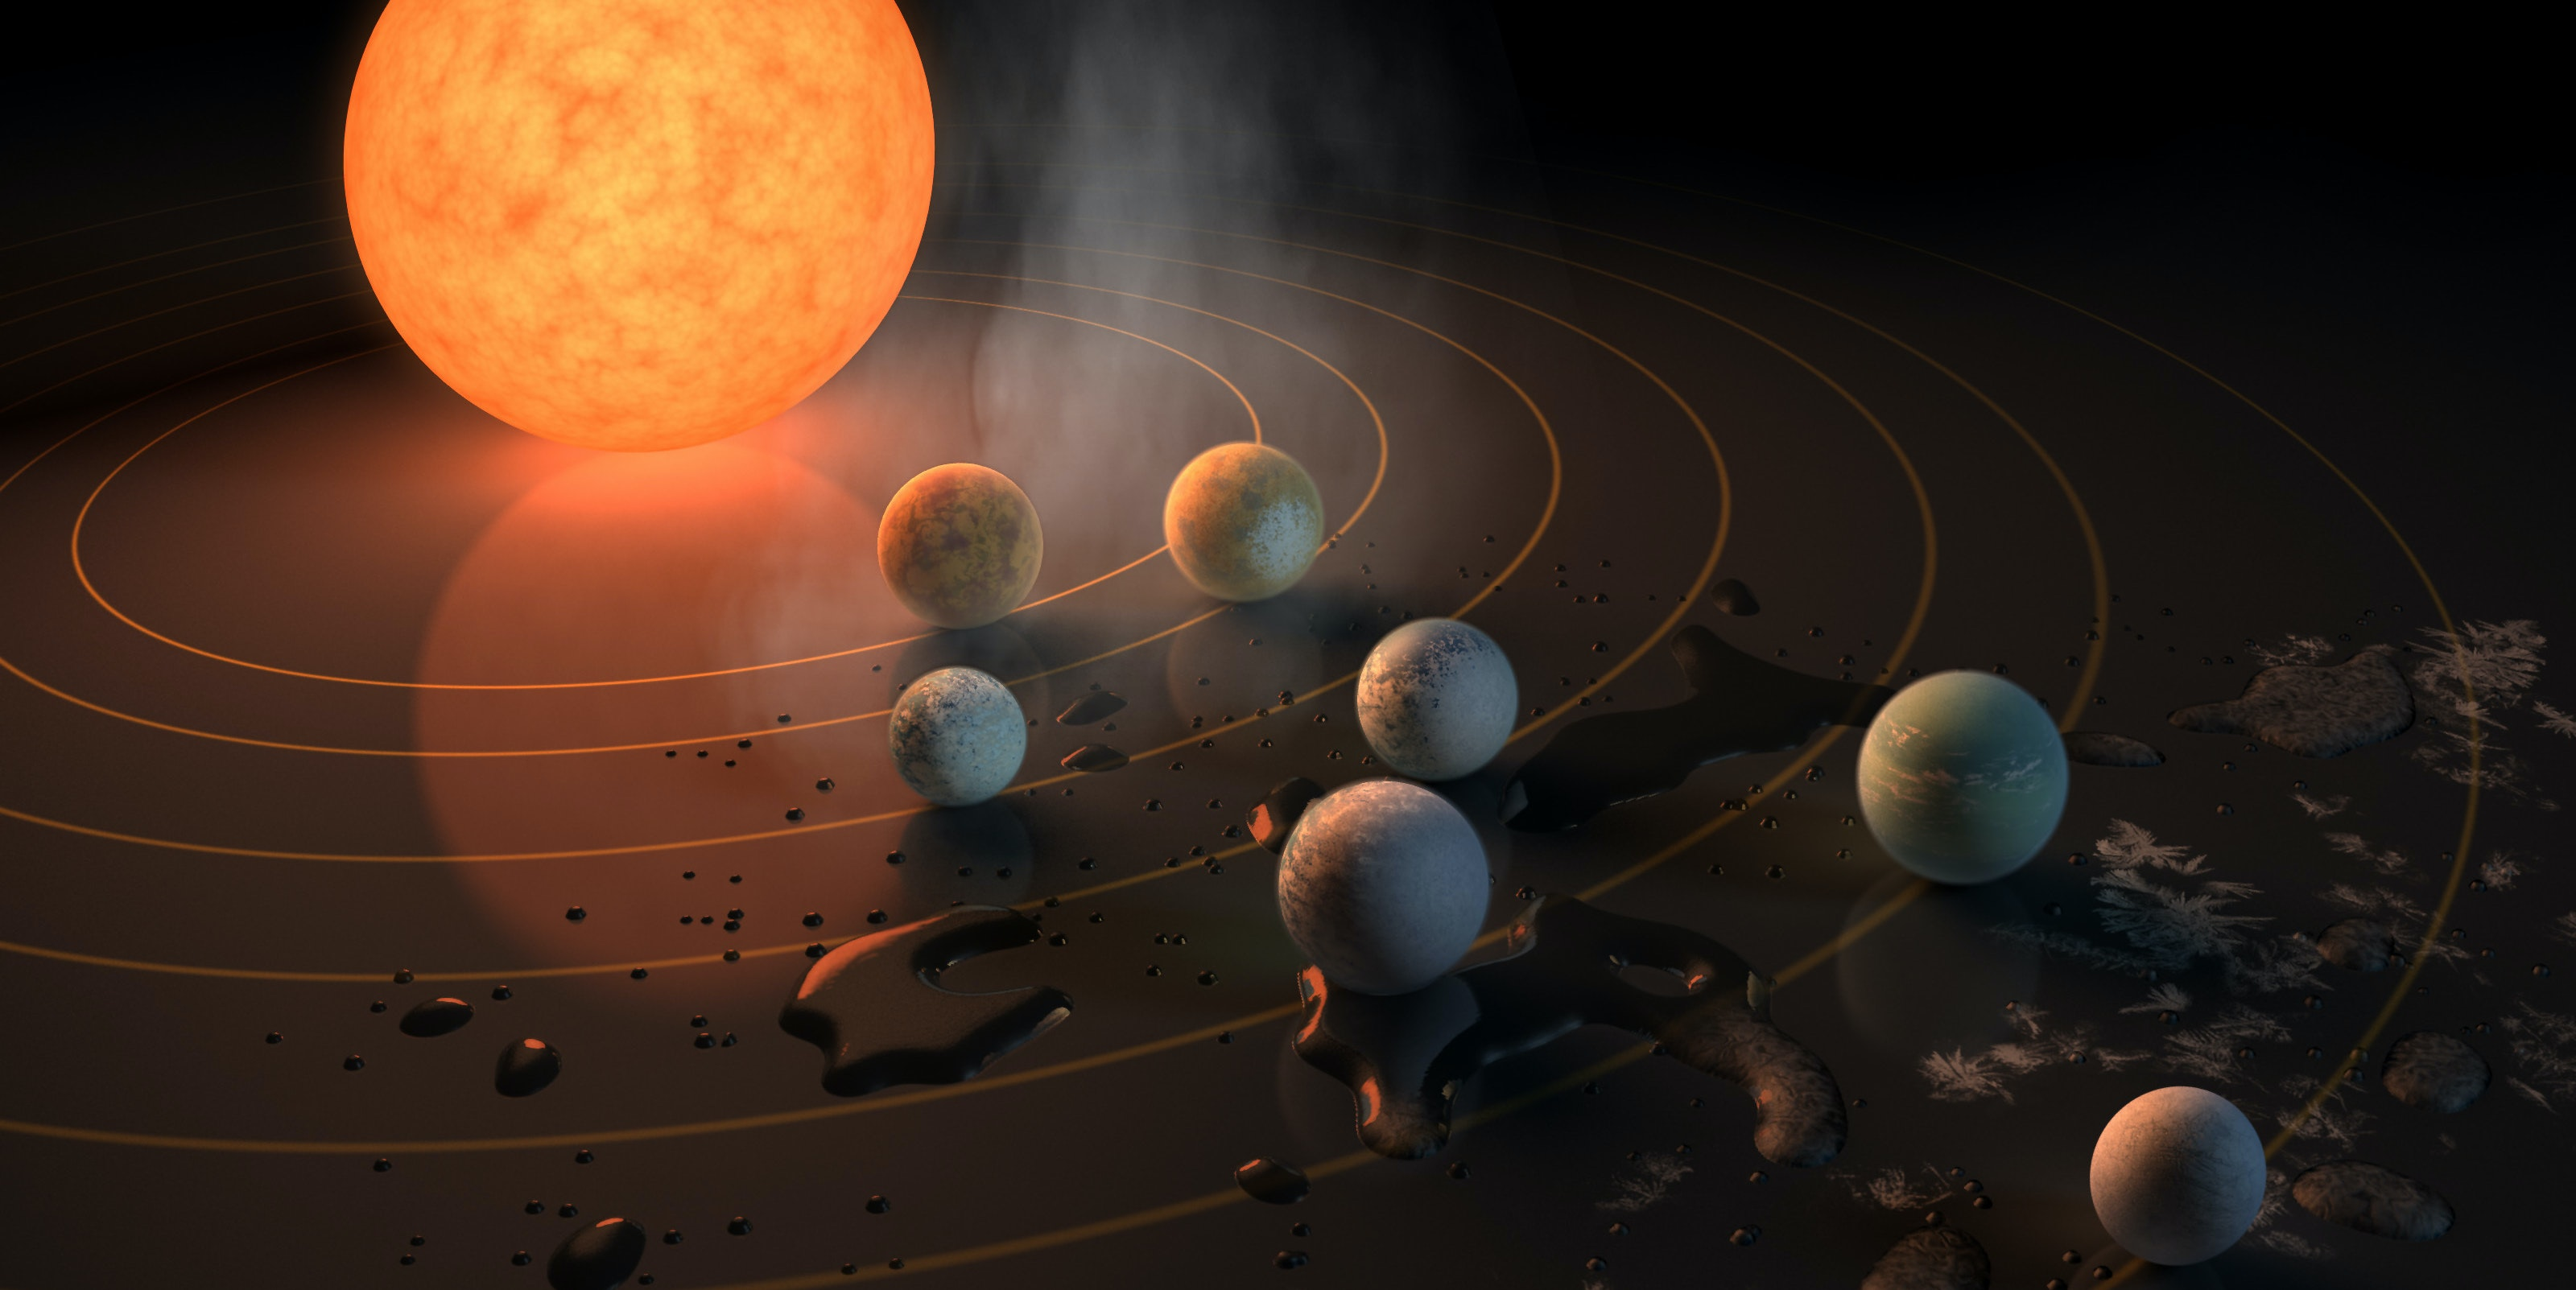 TRAPPIST-1 Might Be Home to Planet-Hopping Aliens